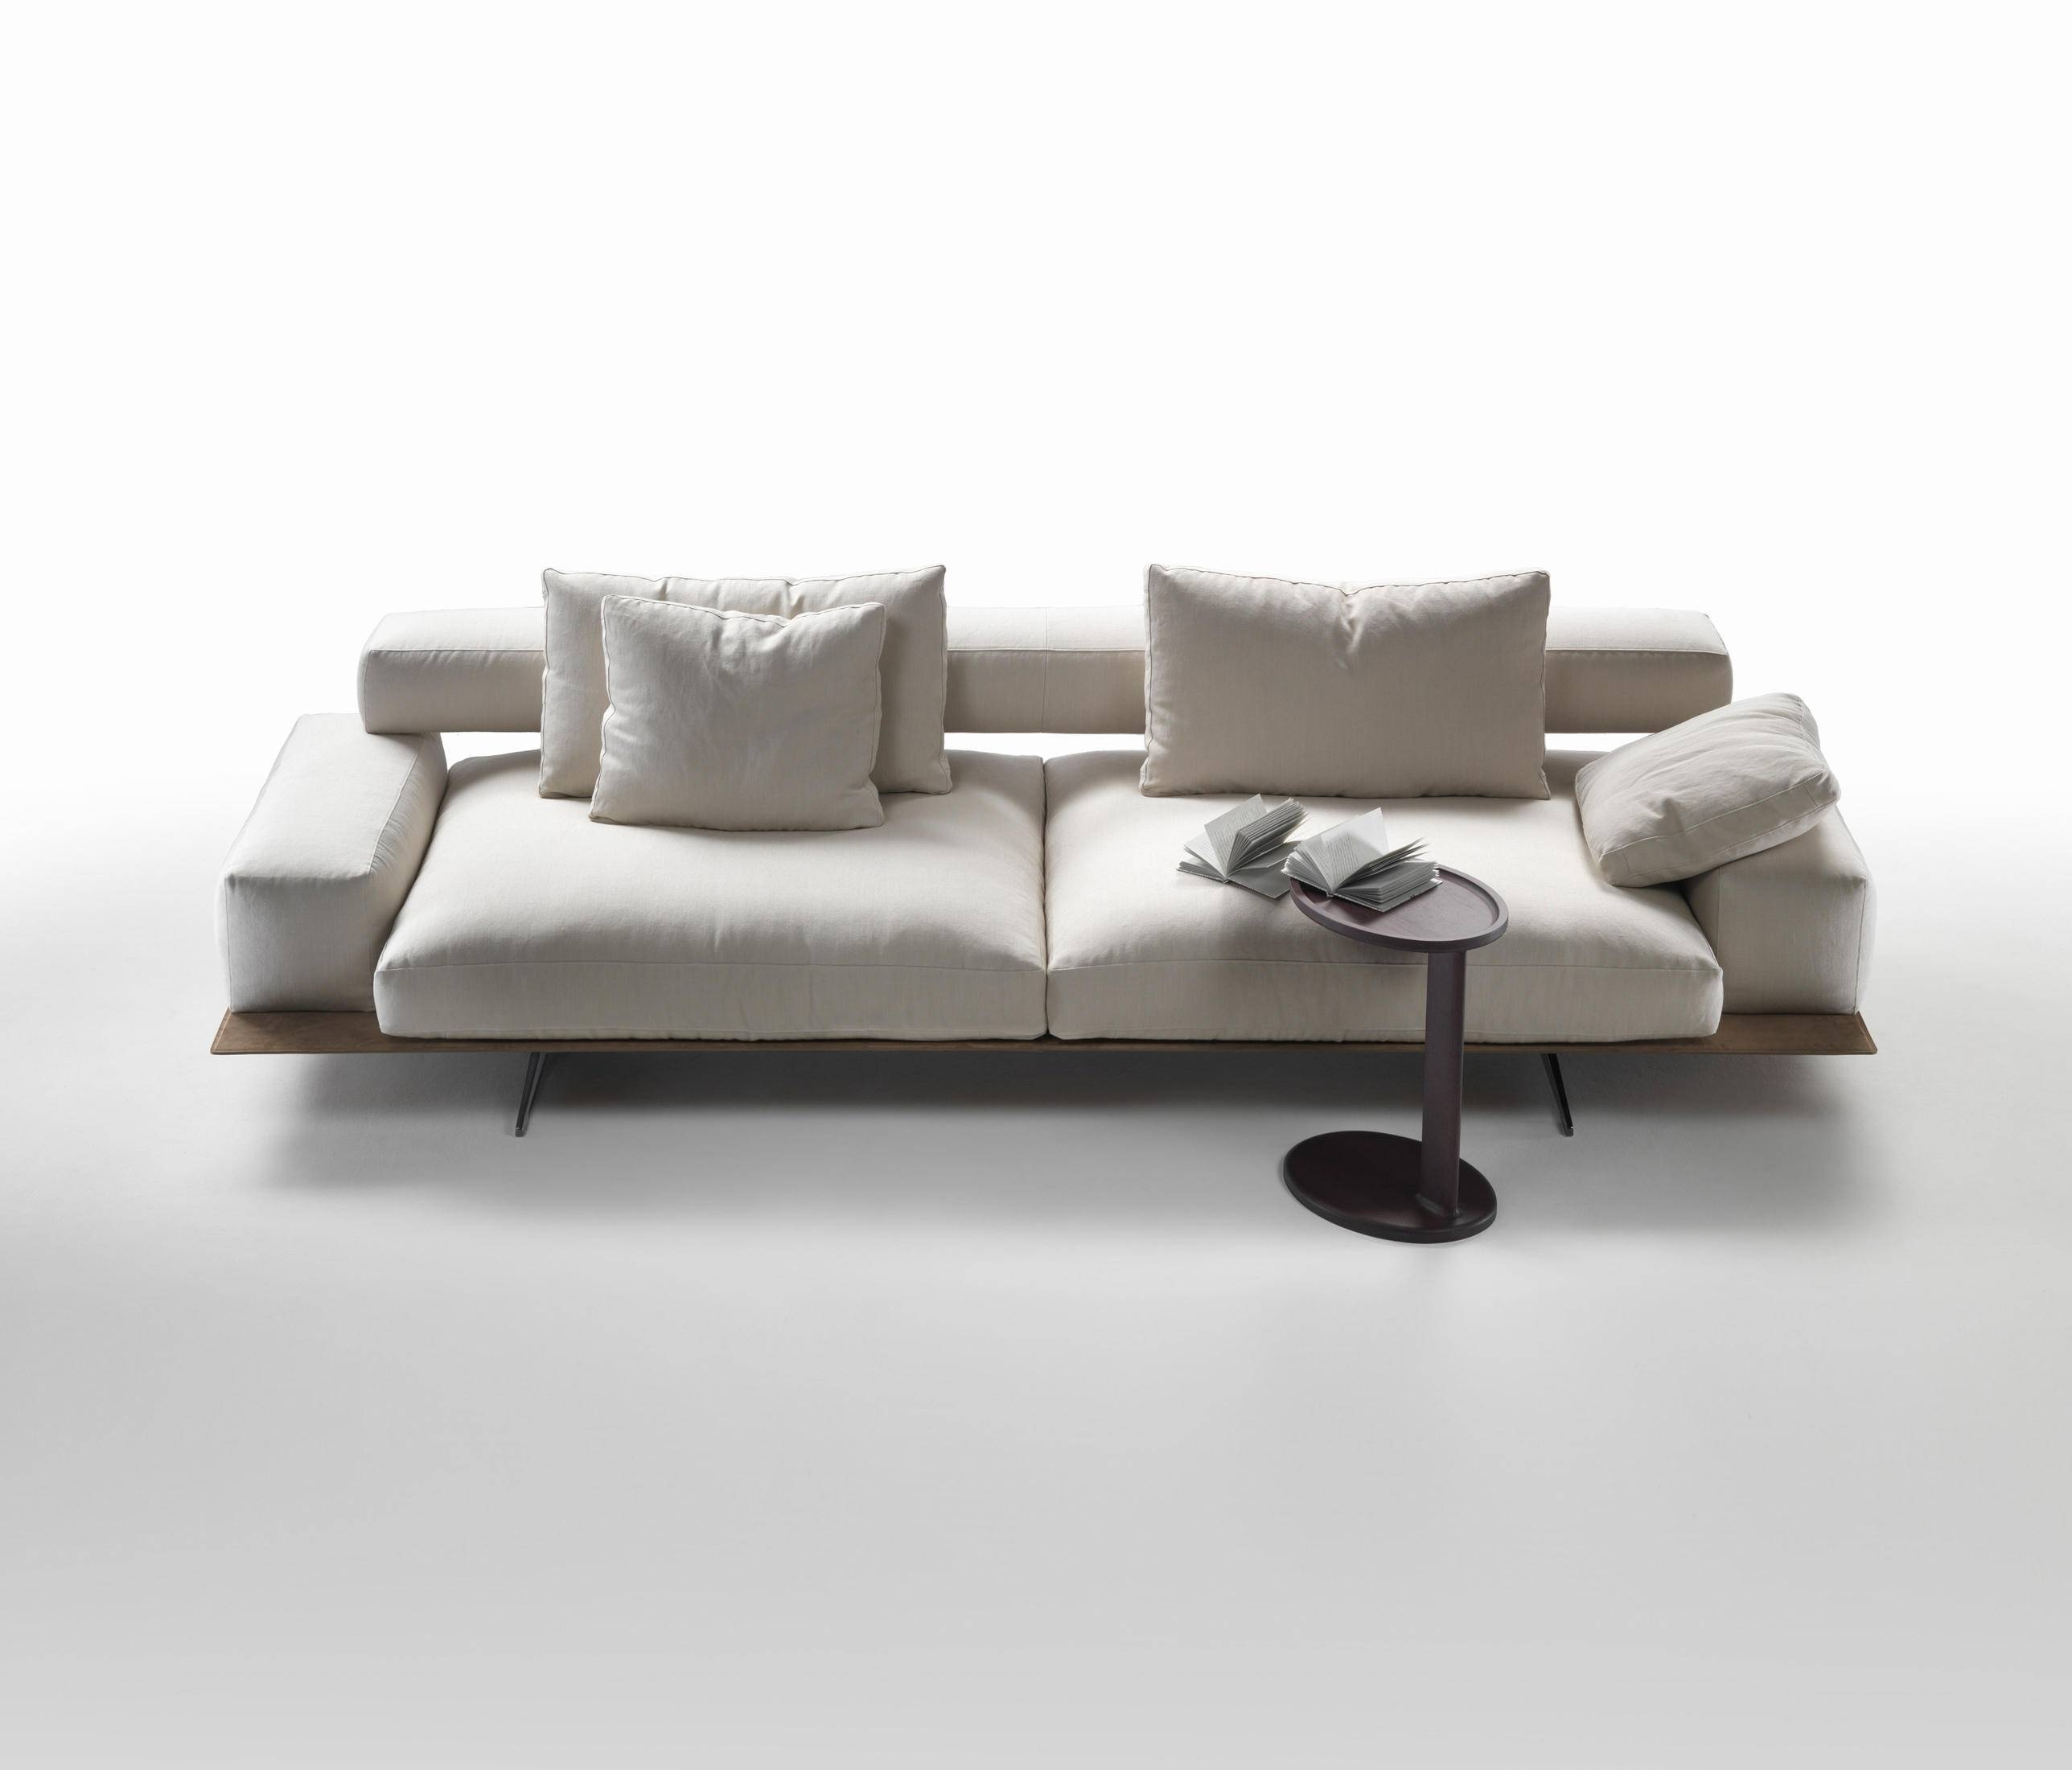 Wing - Lounge Sofas From Flexform | Architonic in Flexform Sofas (Image 23 of 25)